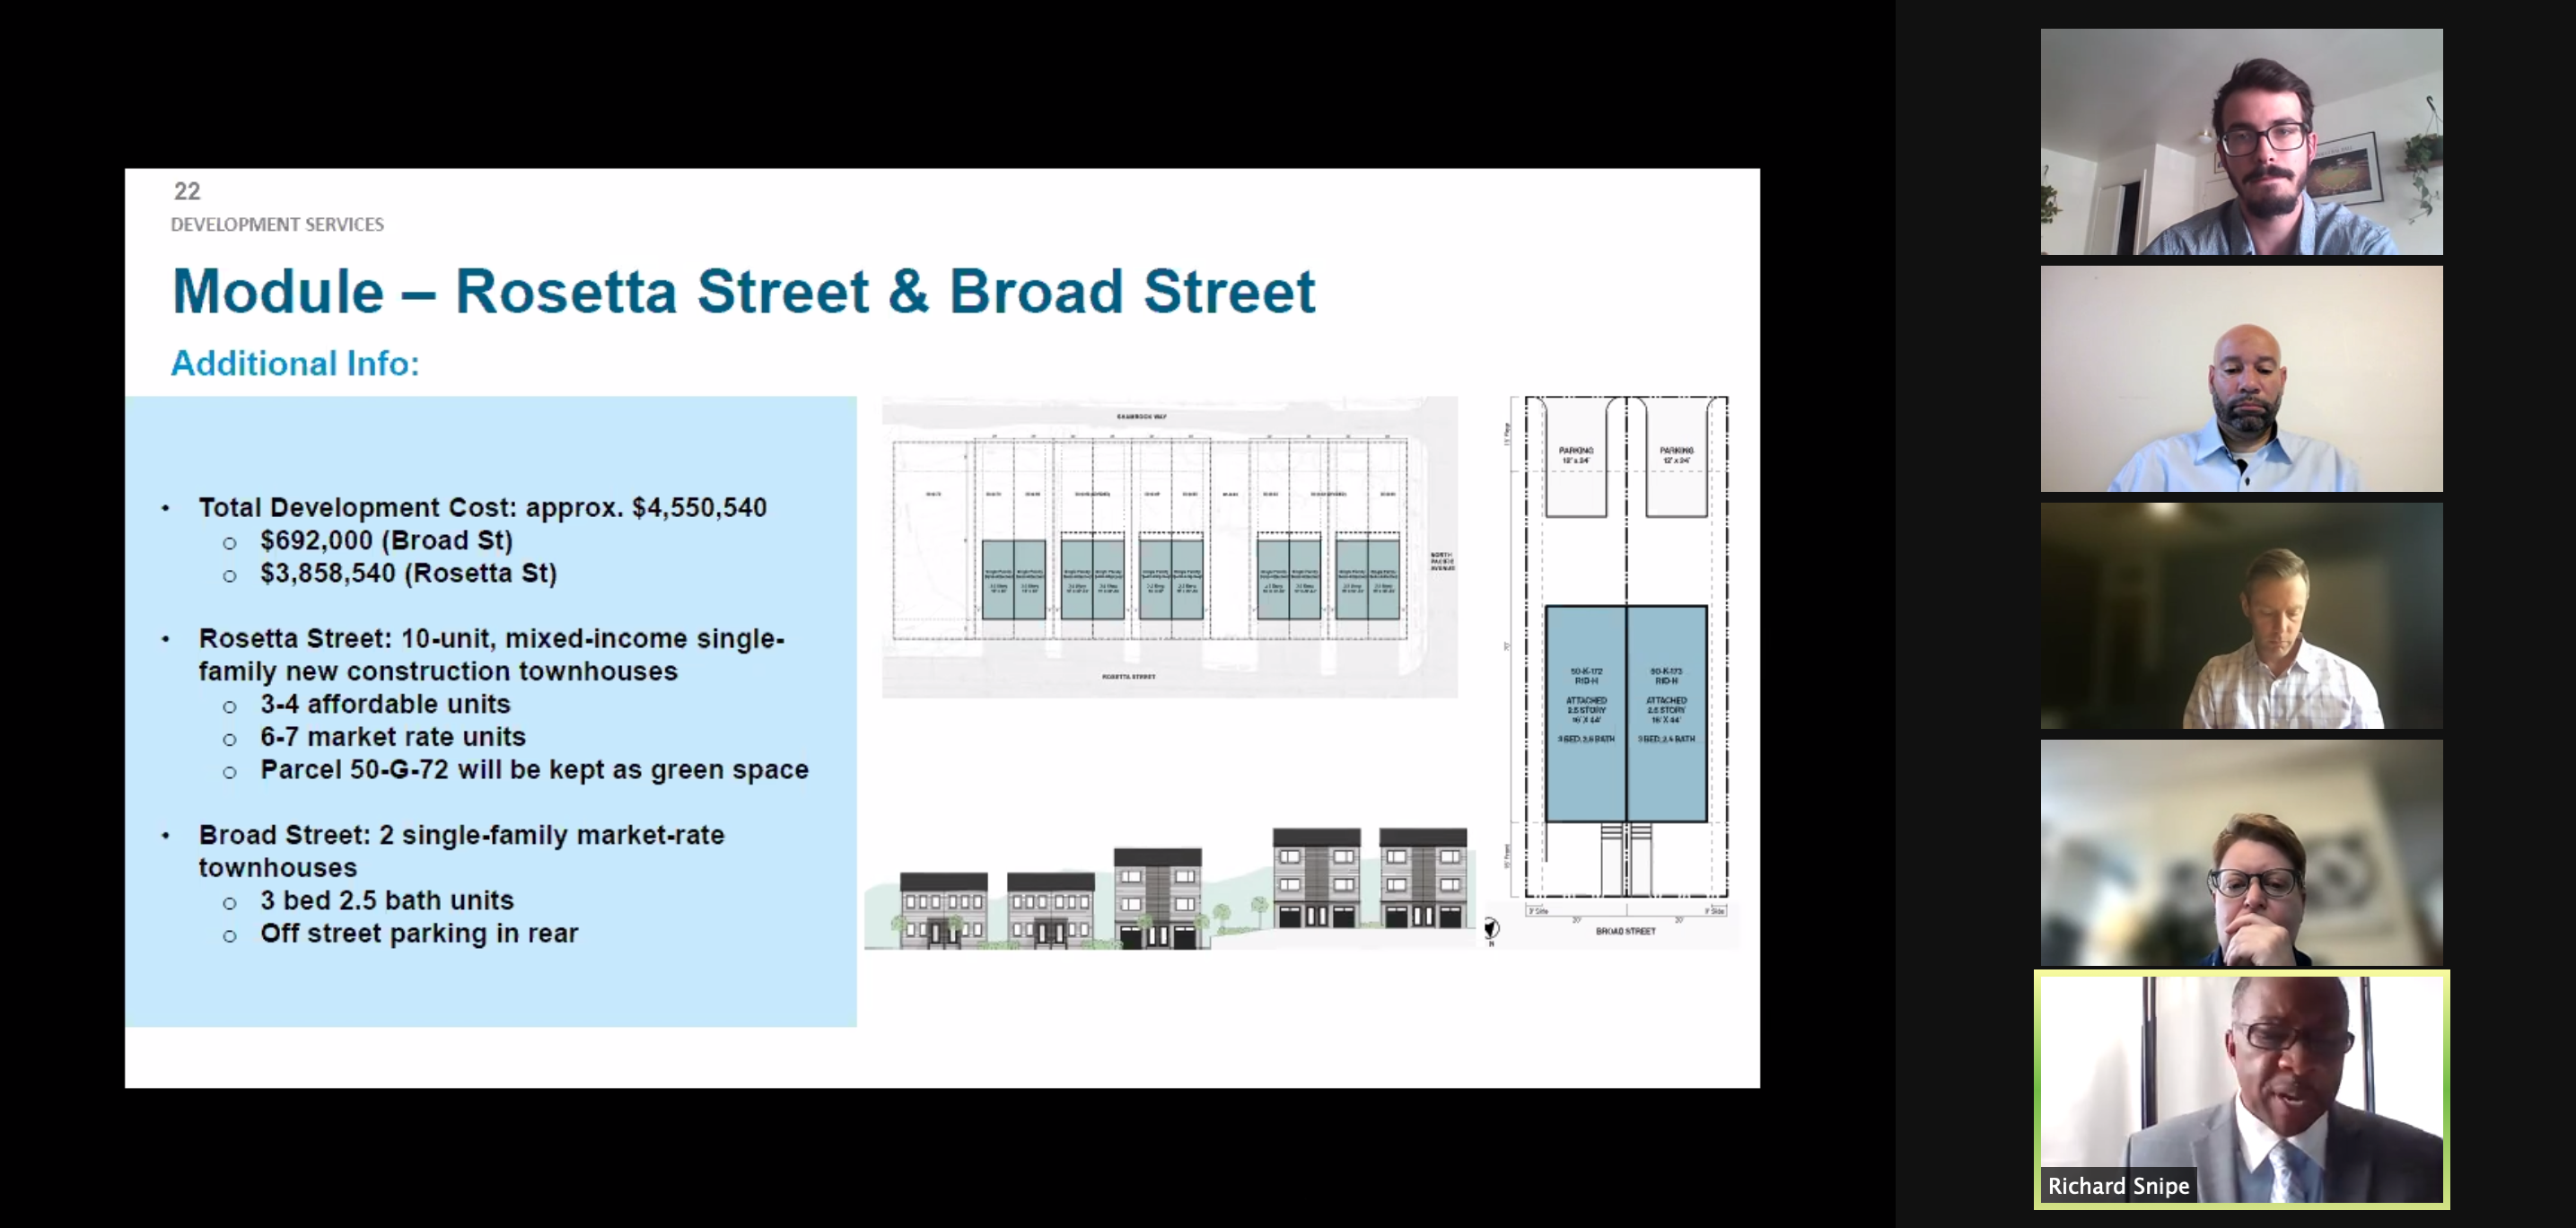 Urban Redevelopment Authority board members and staff talk about a concept for houses in Garfield presented by Module Design during the April 8, 2021 meeting of the URA board. (Screenshot)